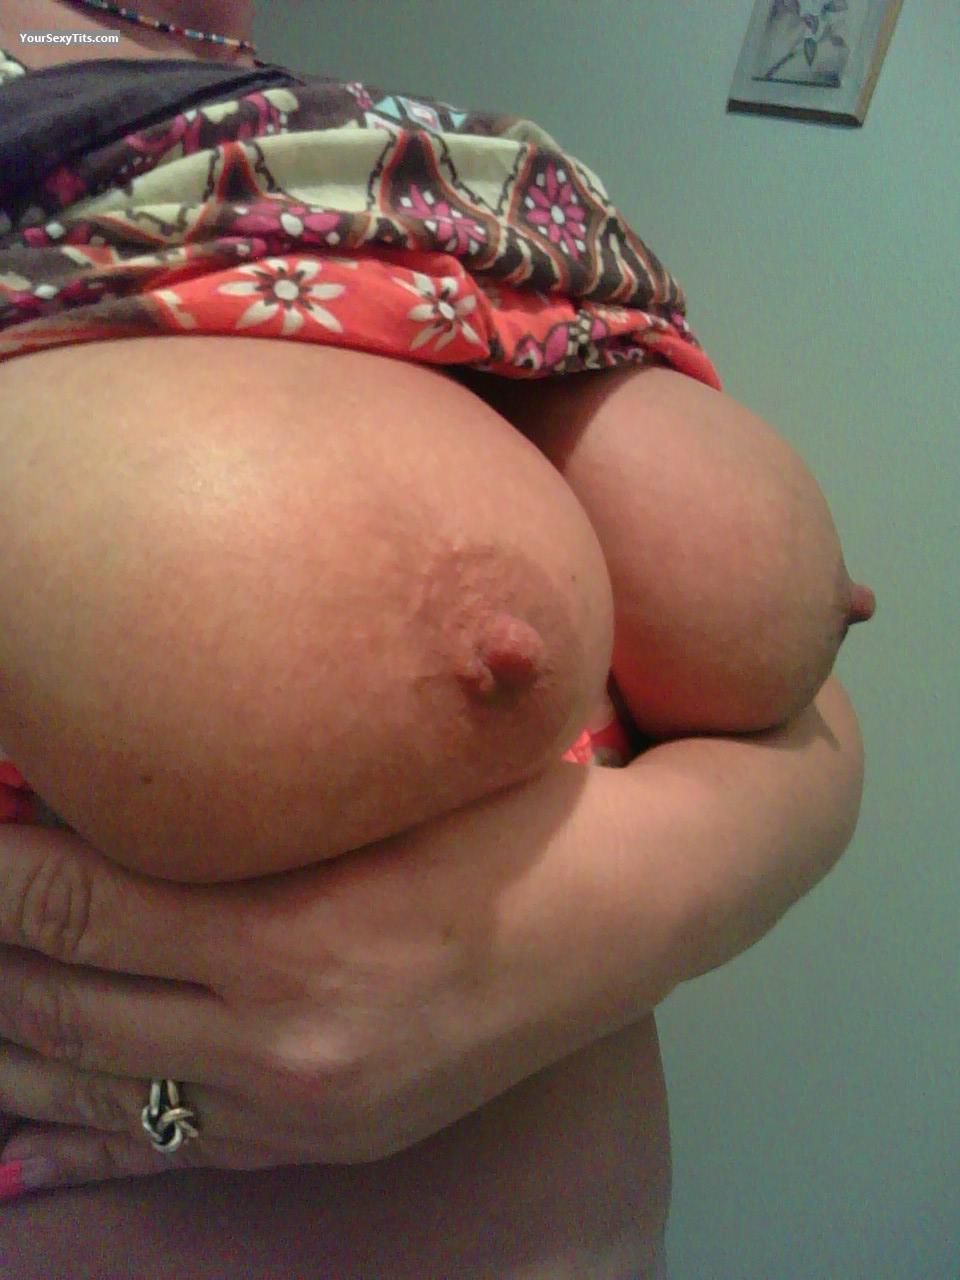 Tit Flash: Big Tits - Missy from United States